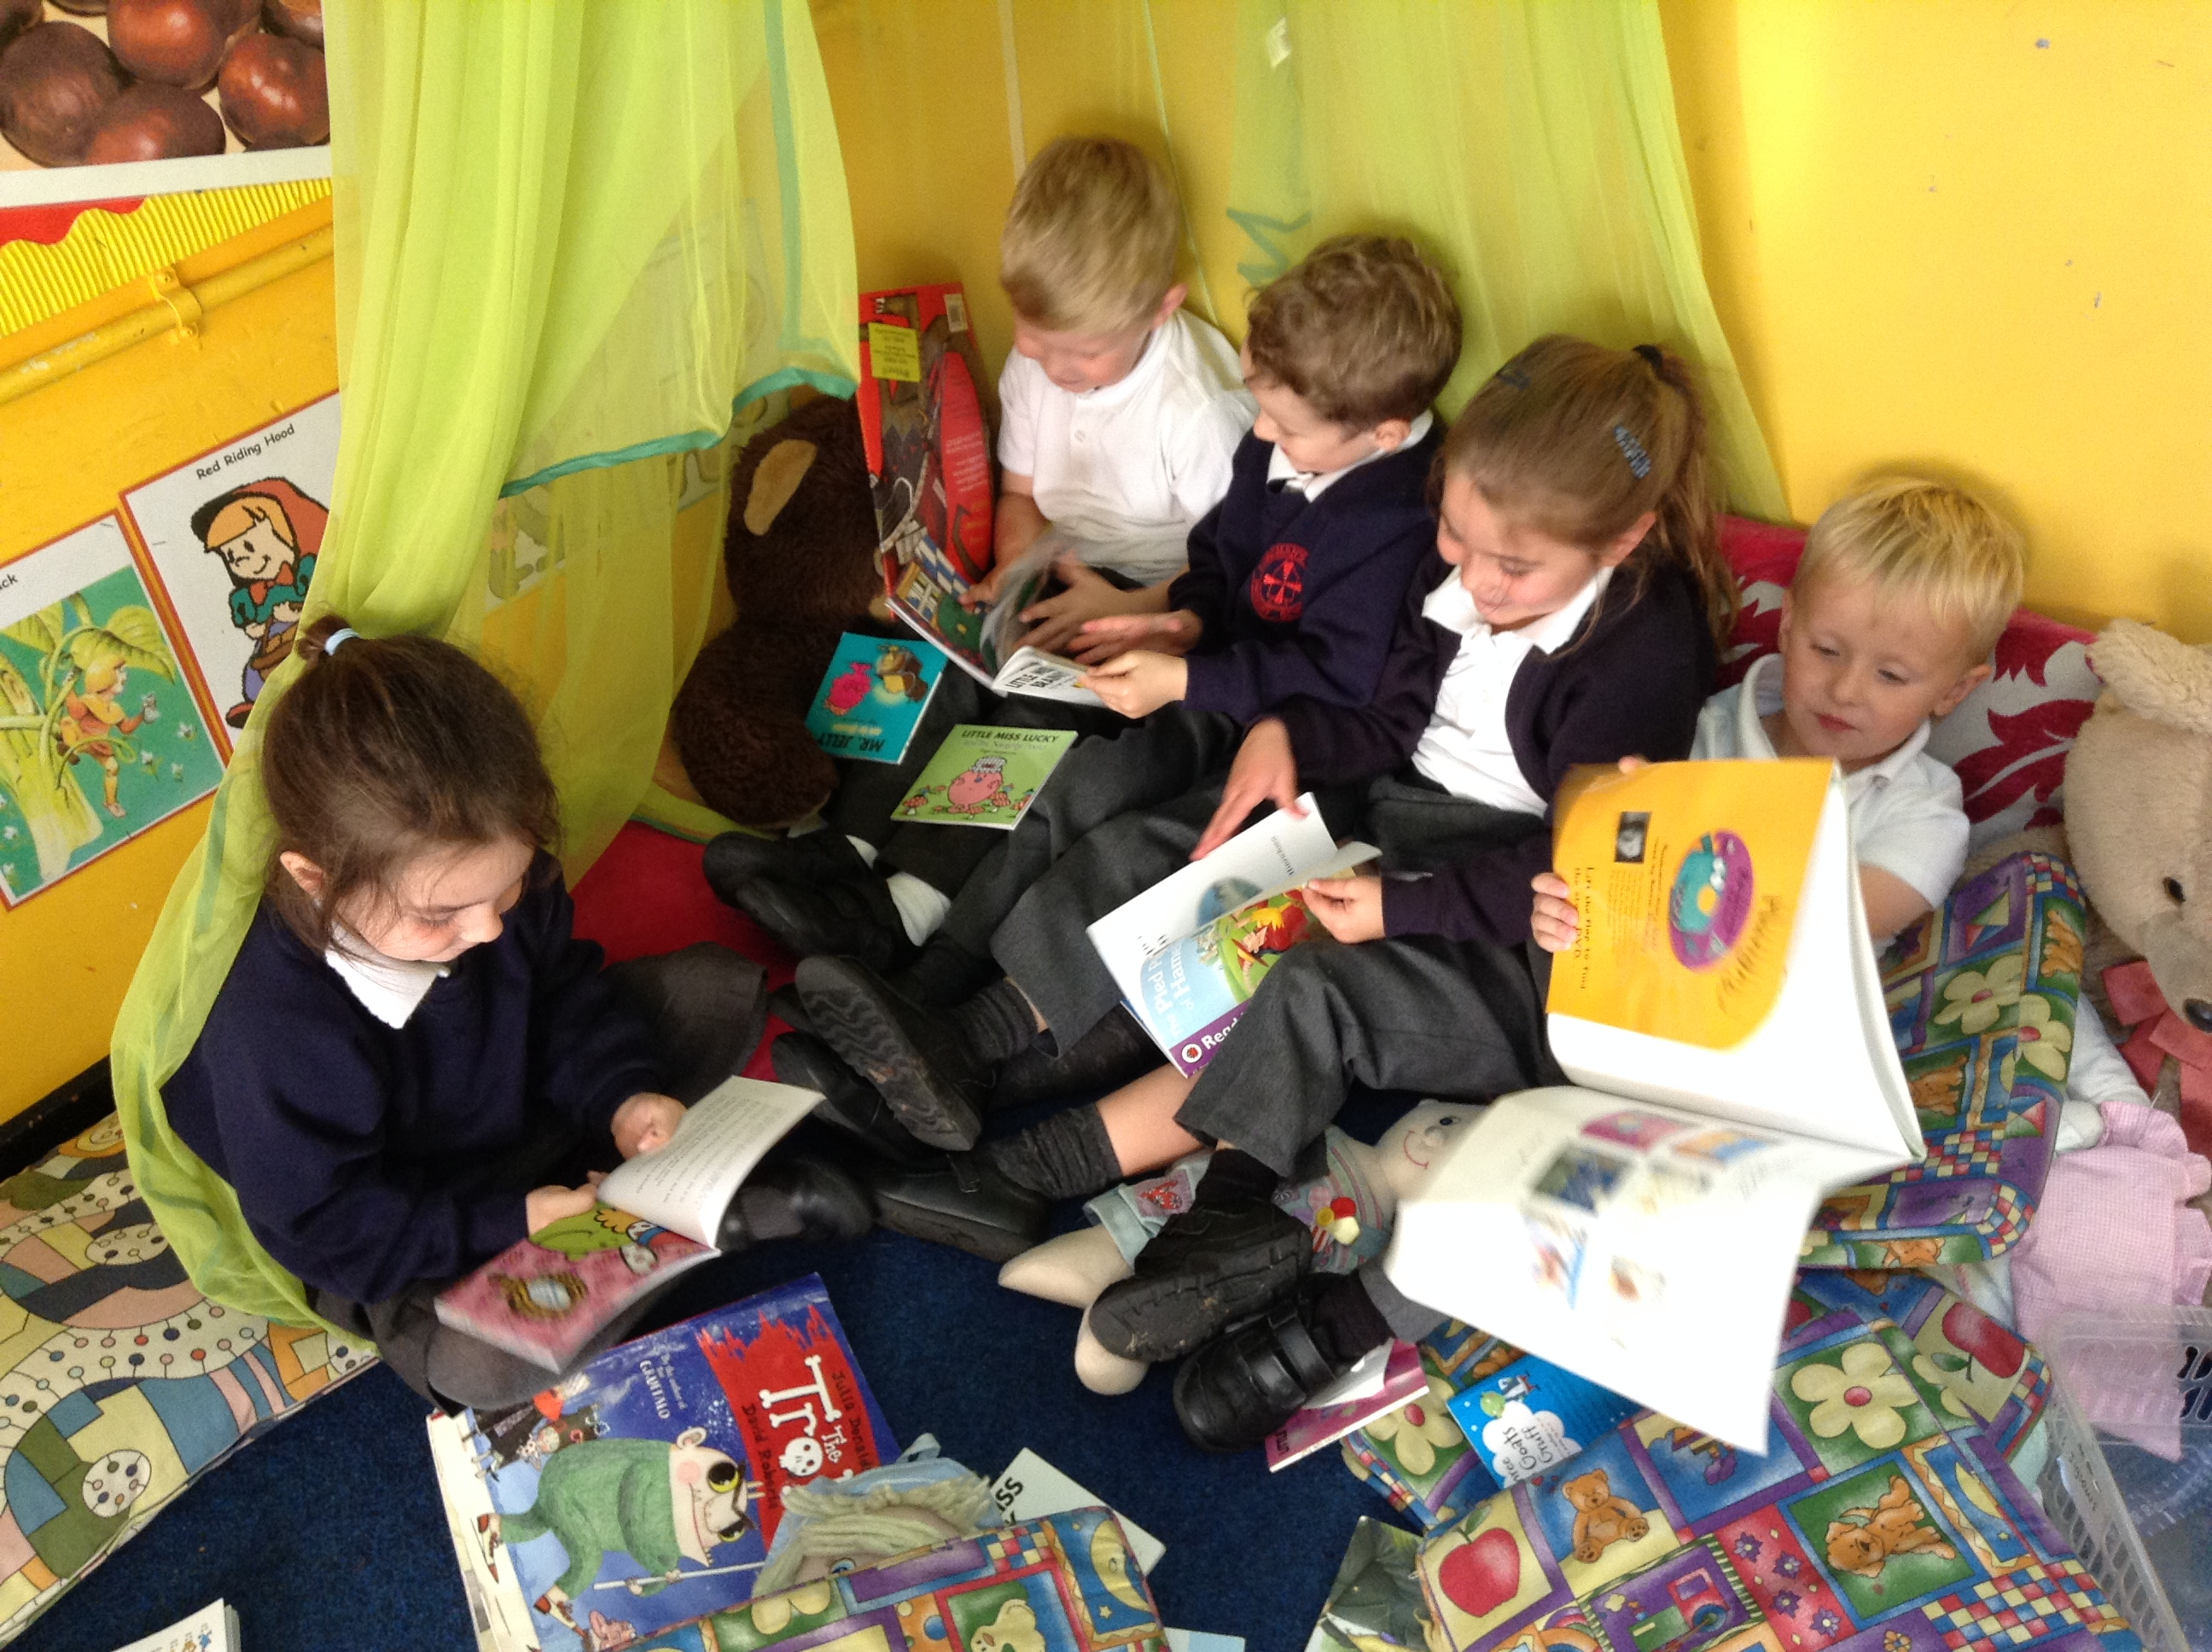 Sharing Books – Longman's Hill Community Primary School